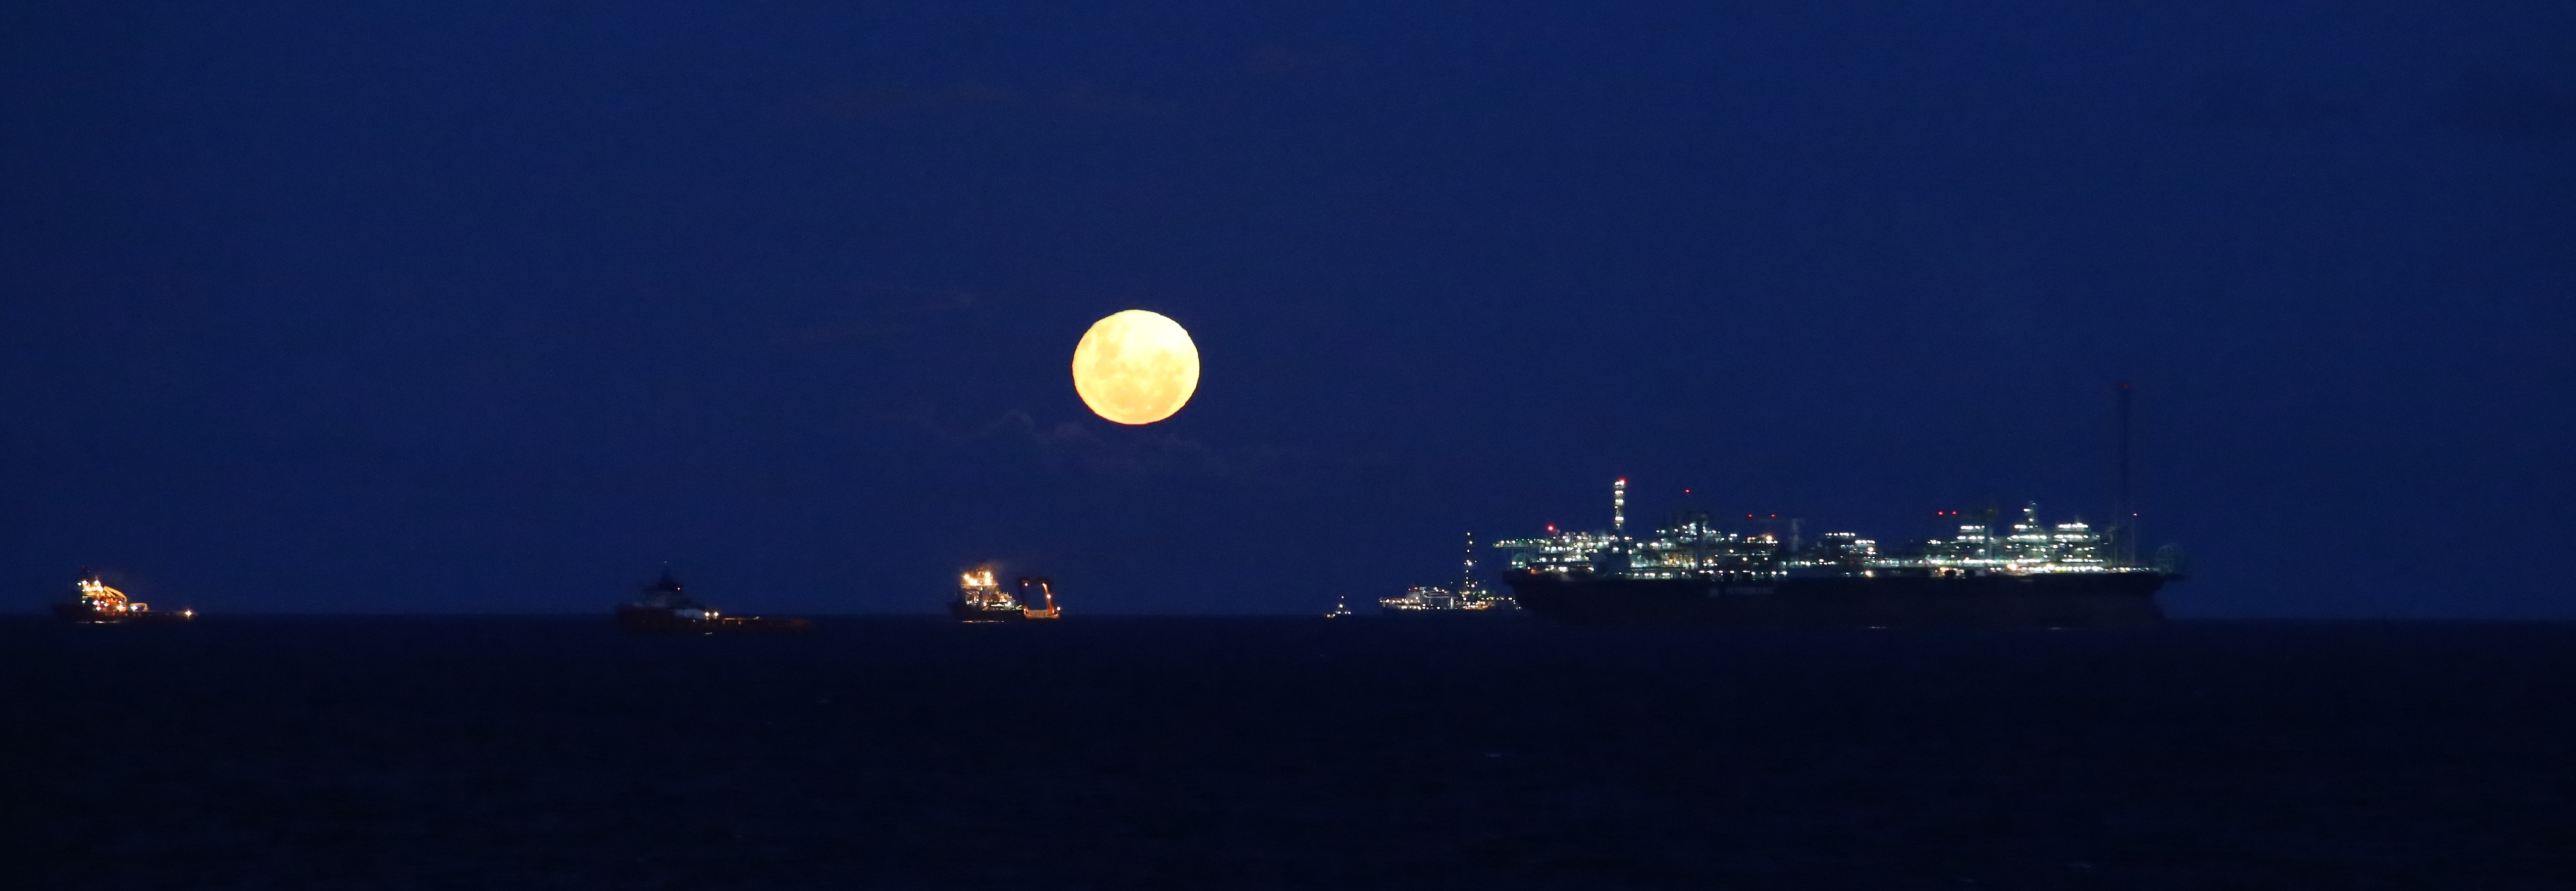 Full moon at the Campus Basin Oil Field in Brazil.